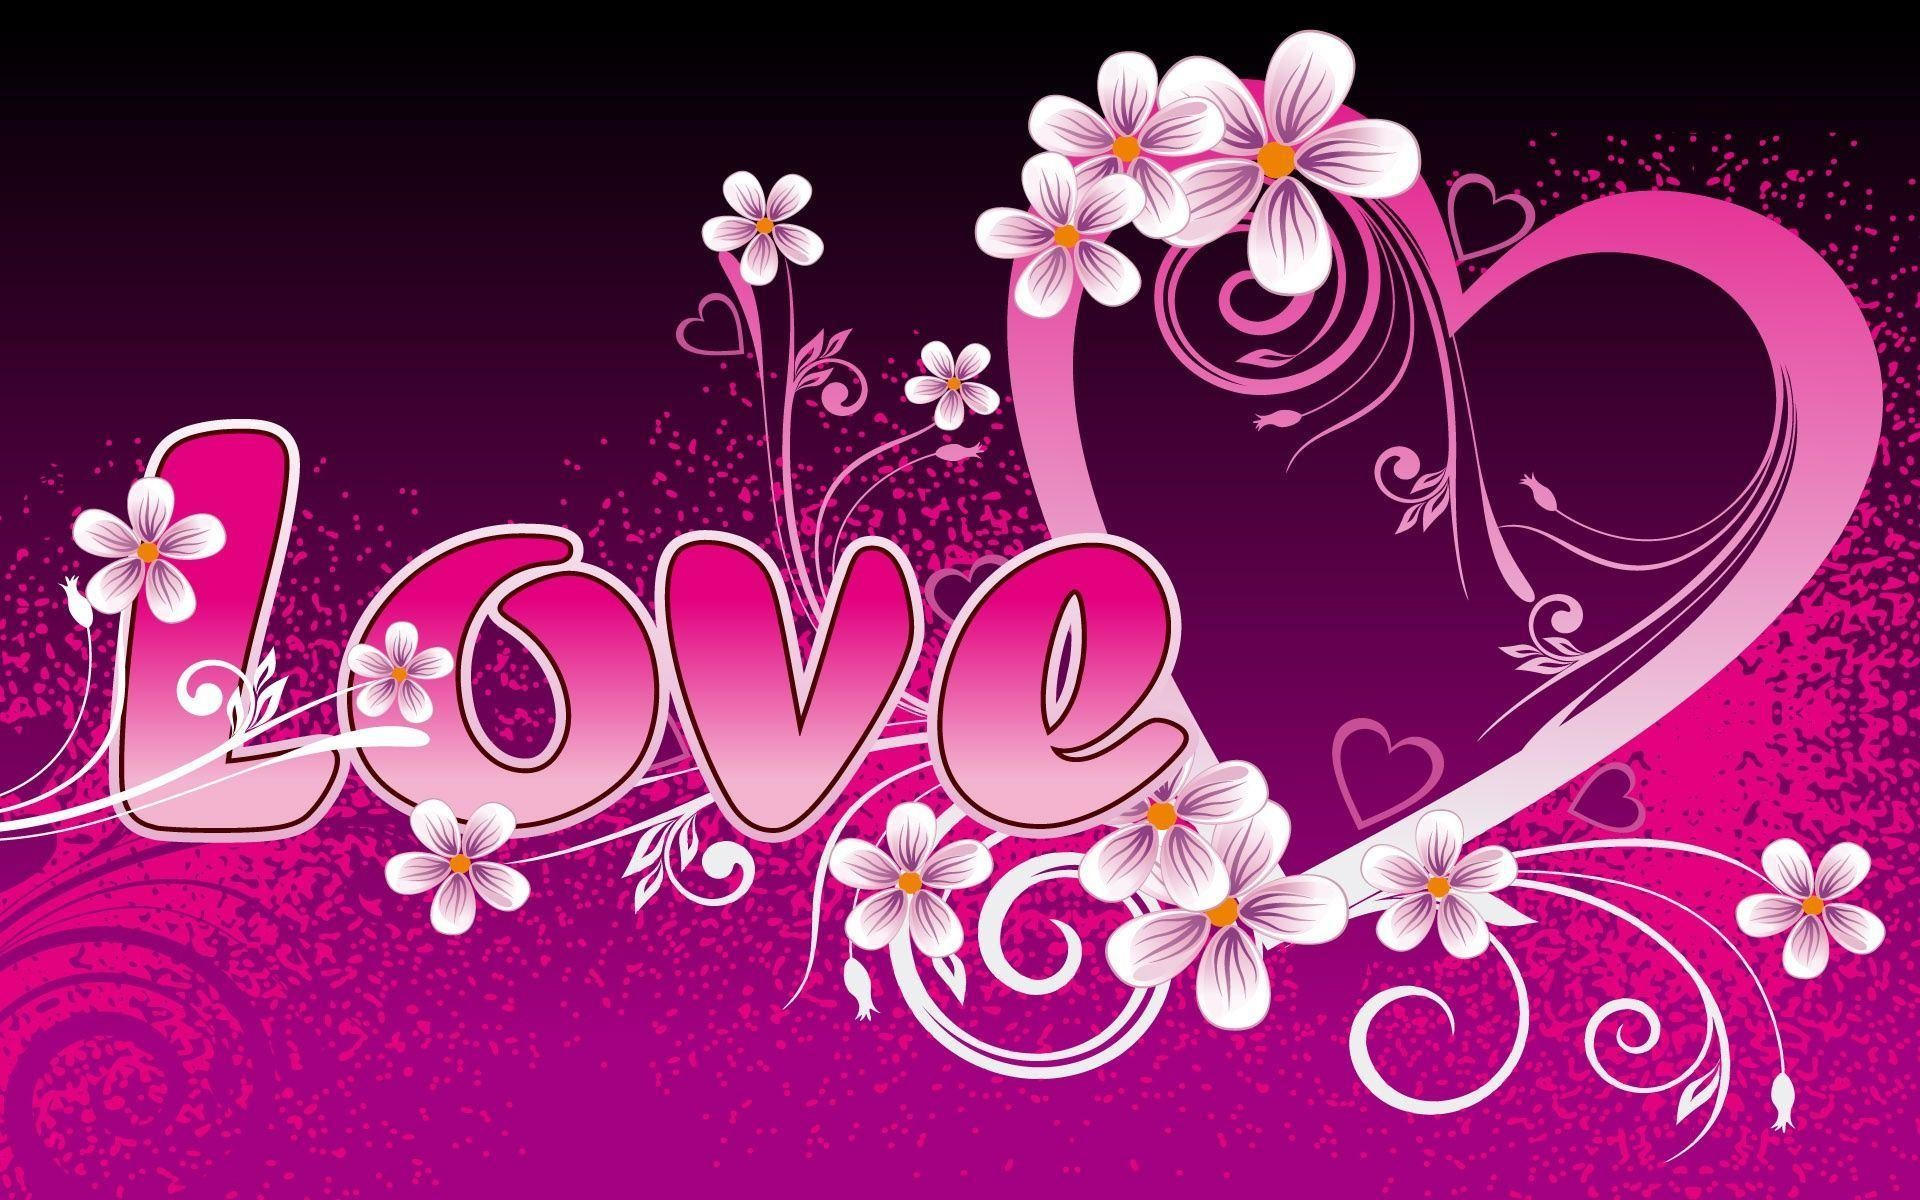 1920x1200 Wallpapers For > Love Heart Wallpaper Free Download